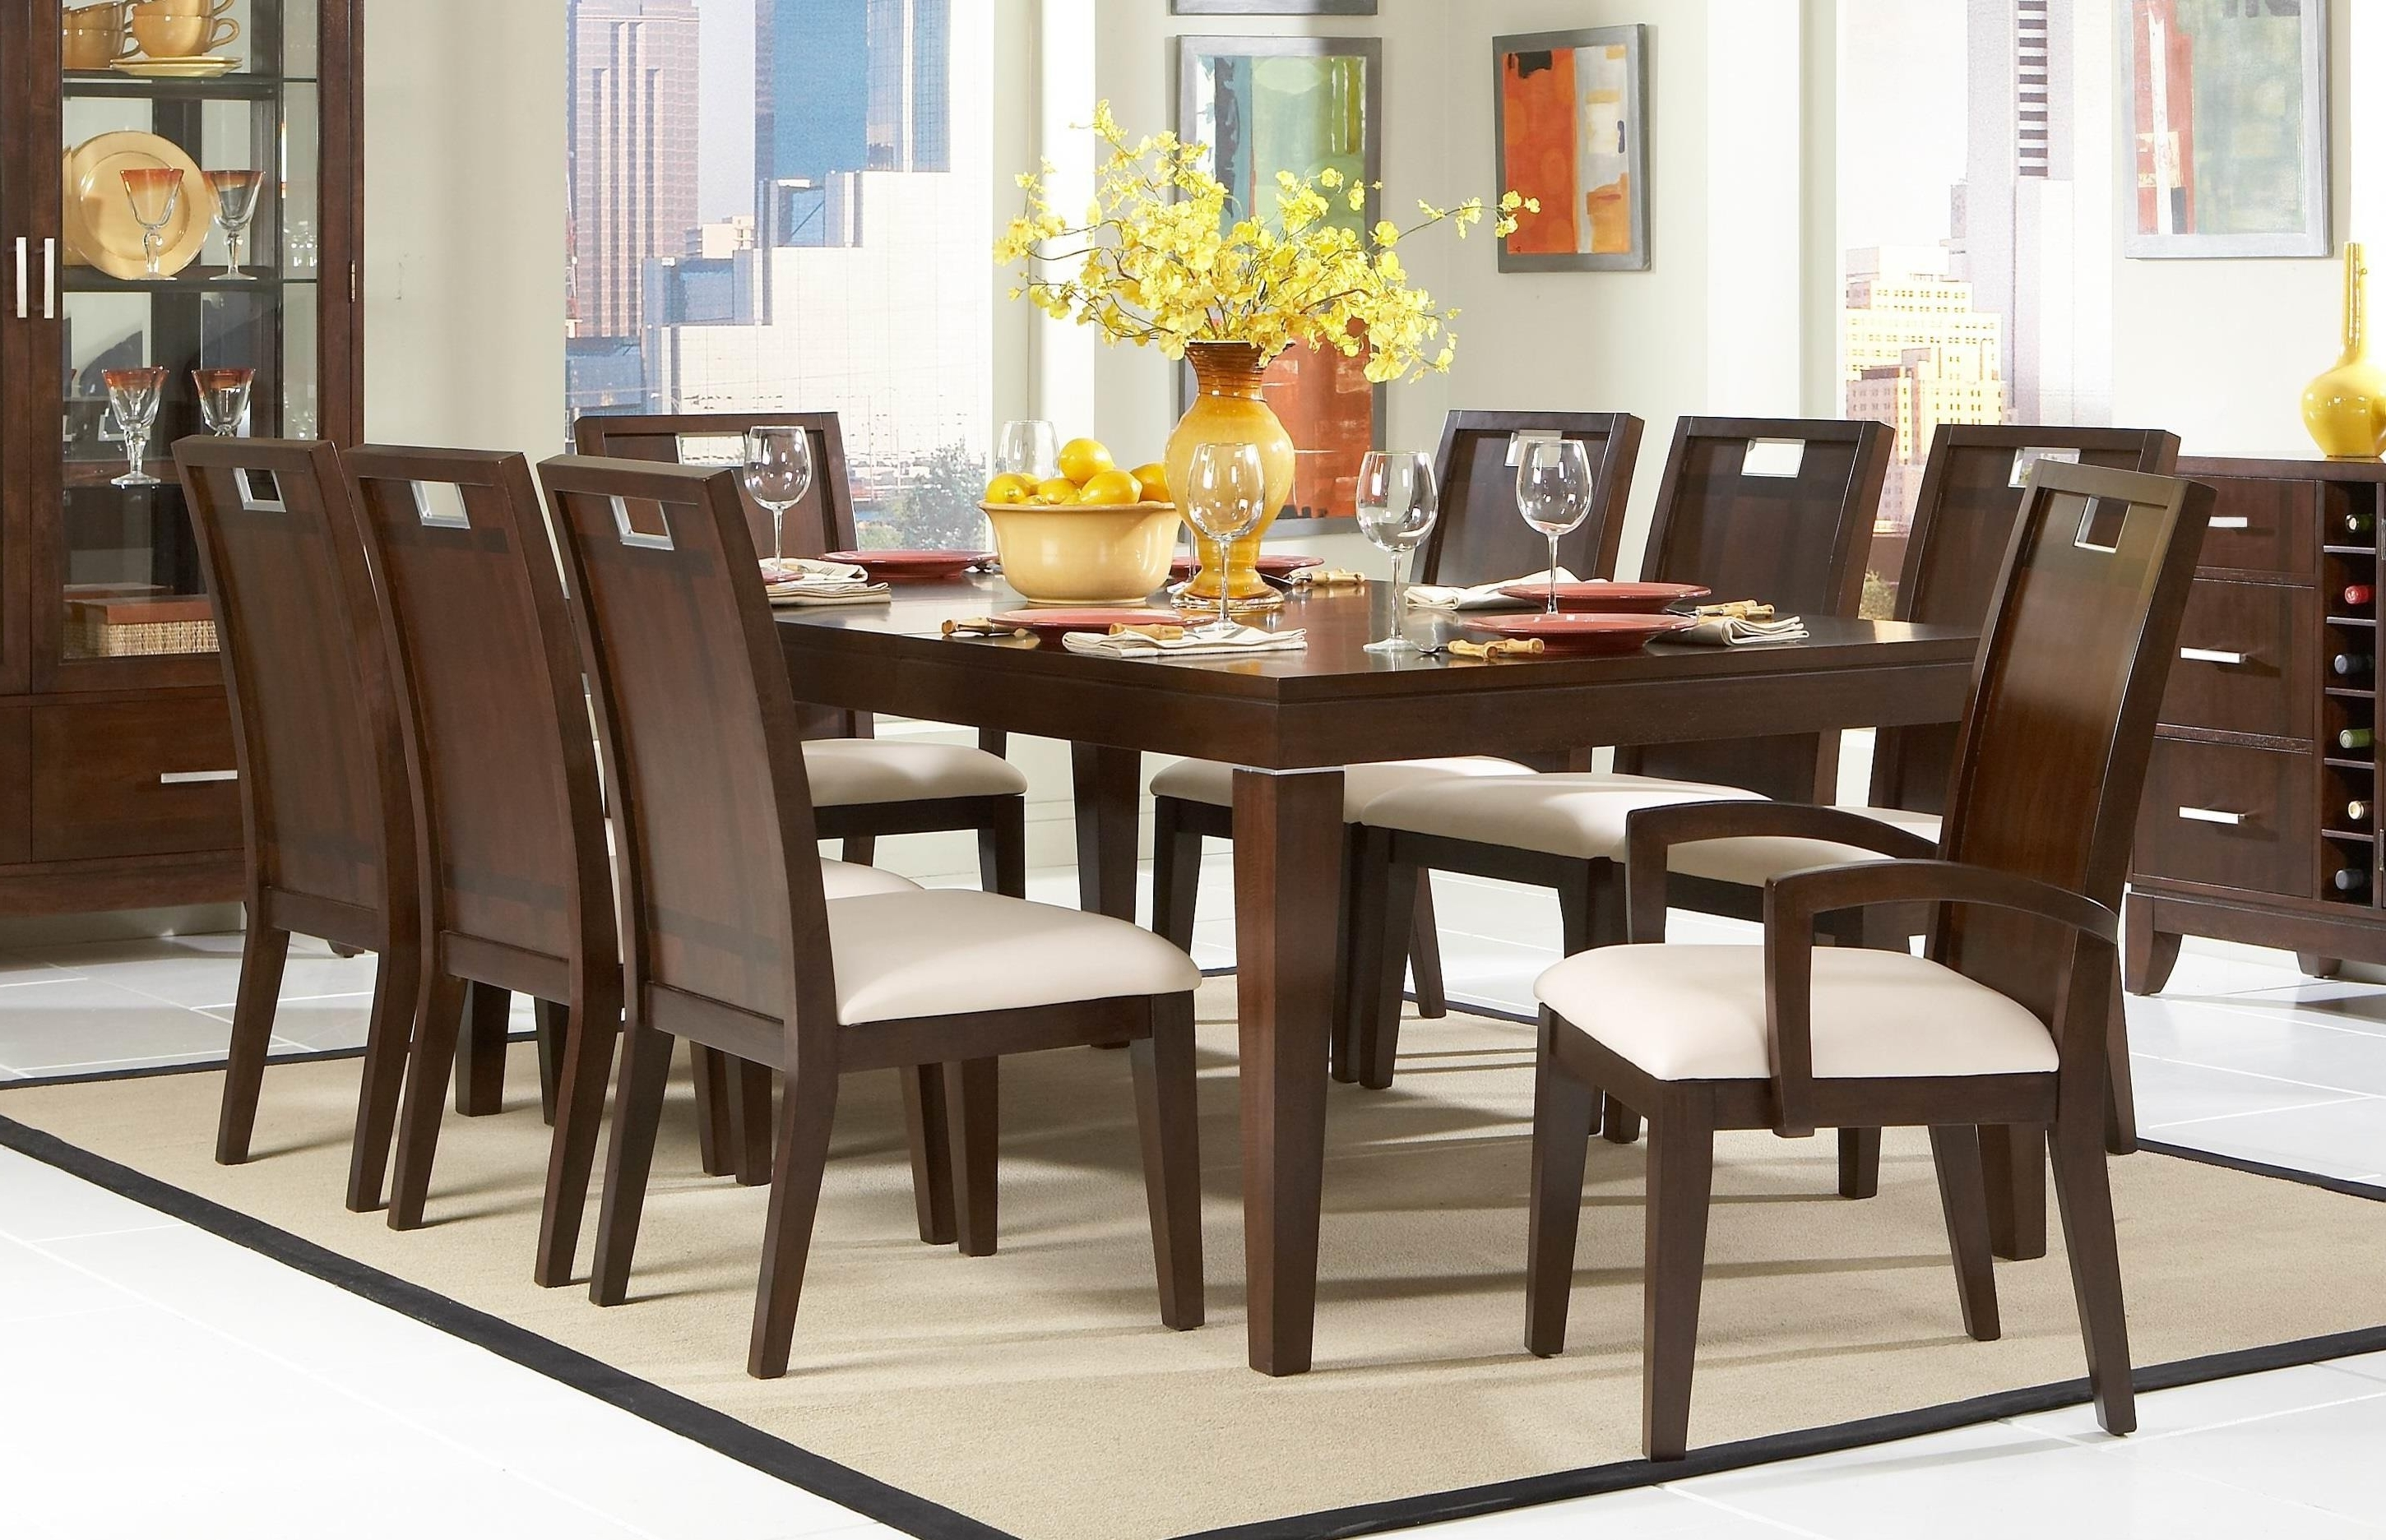 Widely Used 12 Foot Long Dining Table Inspirational Dazzling Solid Wood Dining With Regard To Long Dining Tables (View 25 of 25)